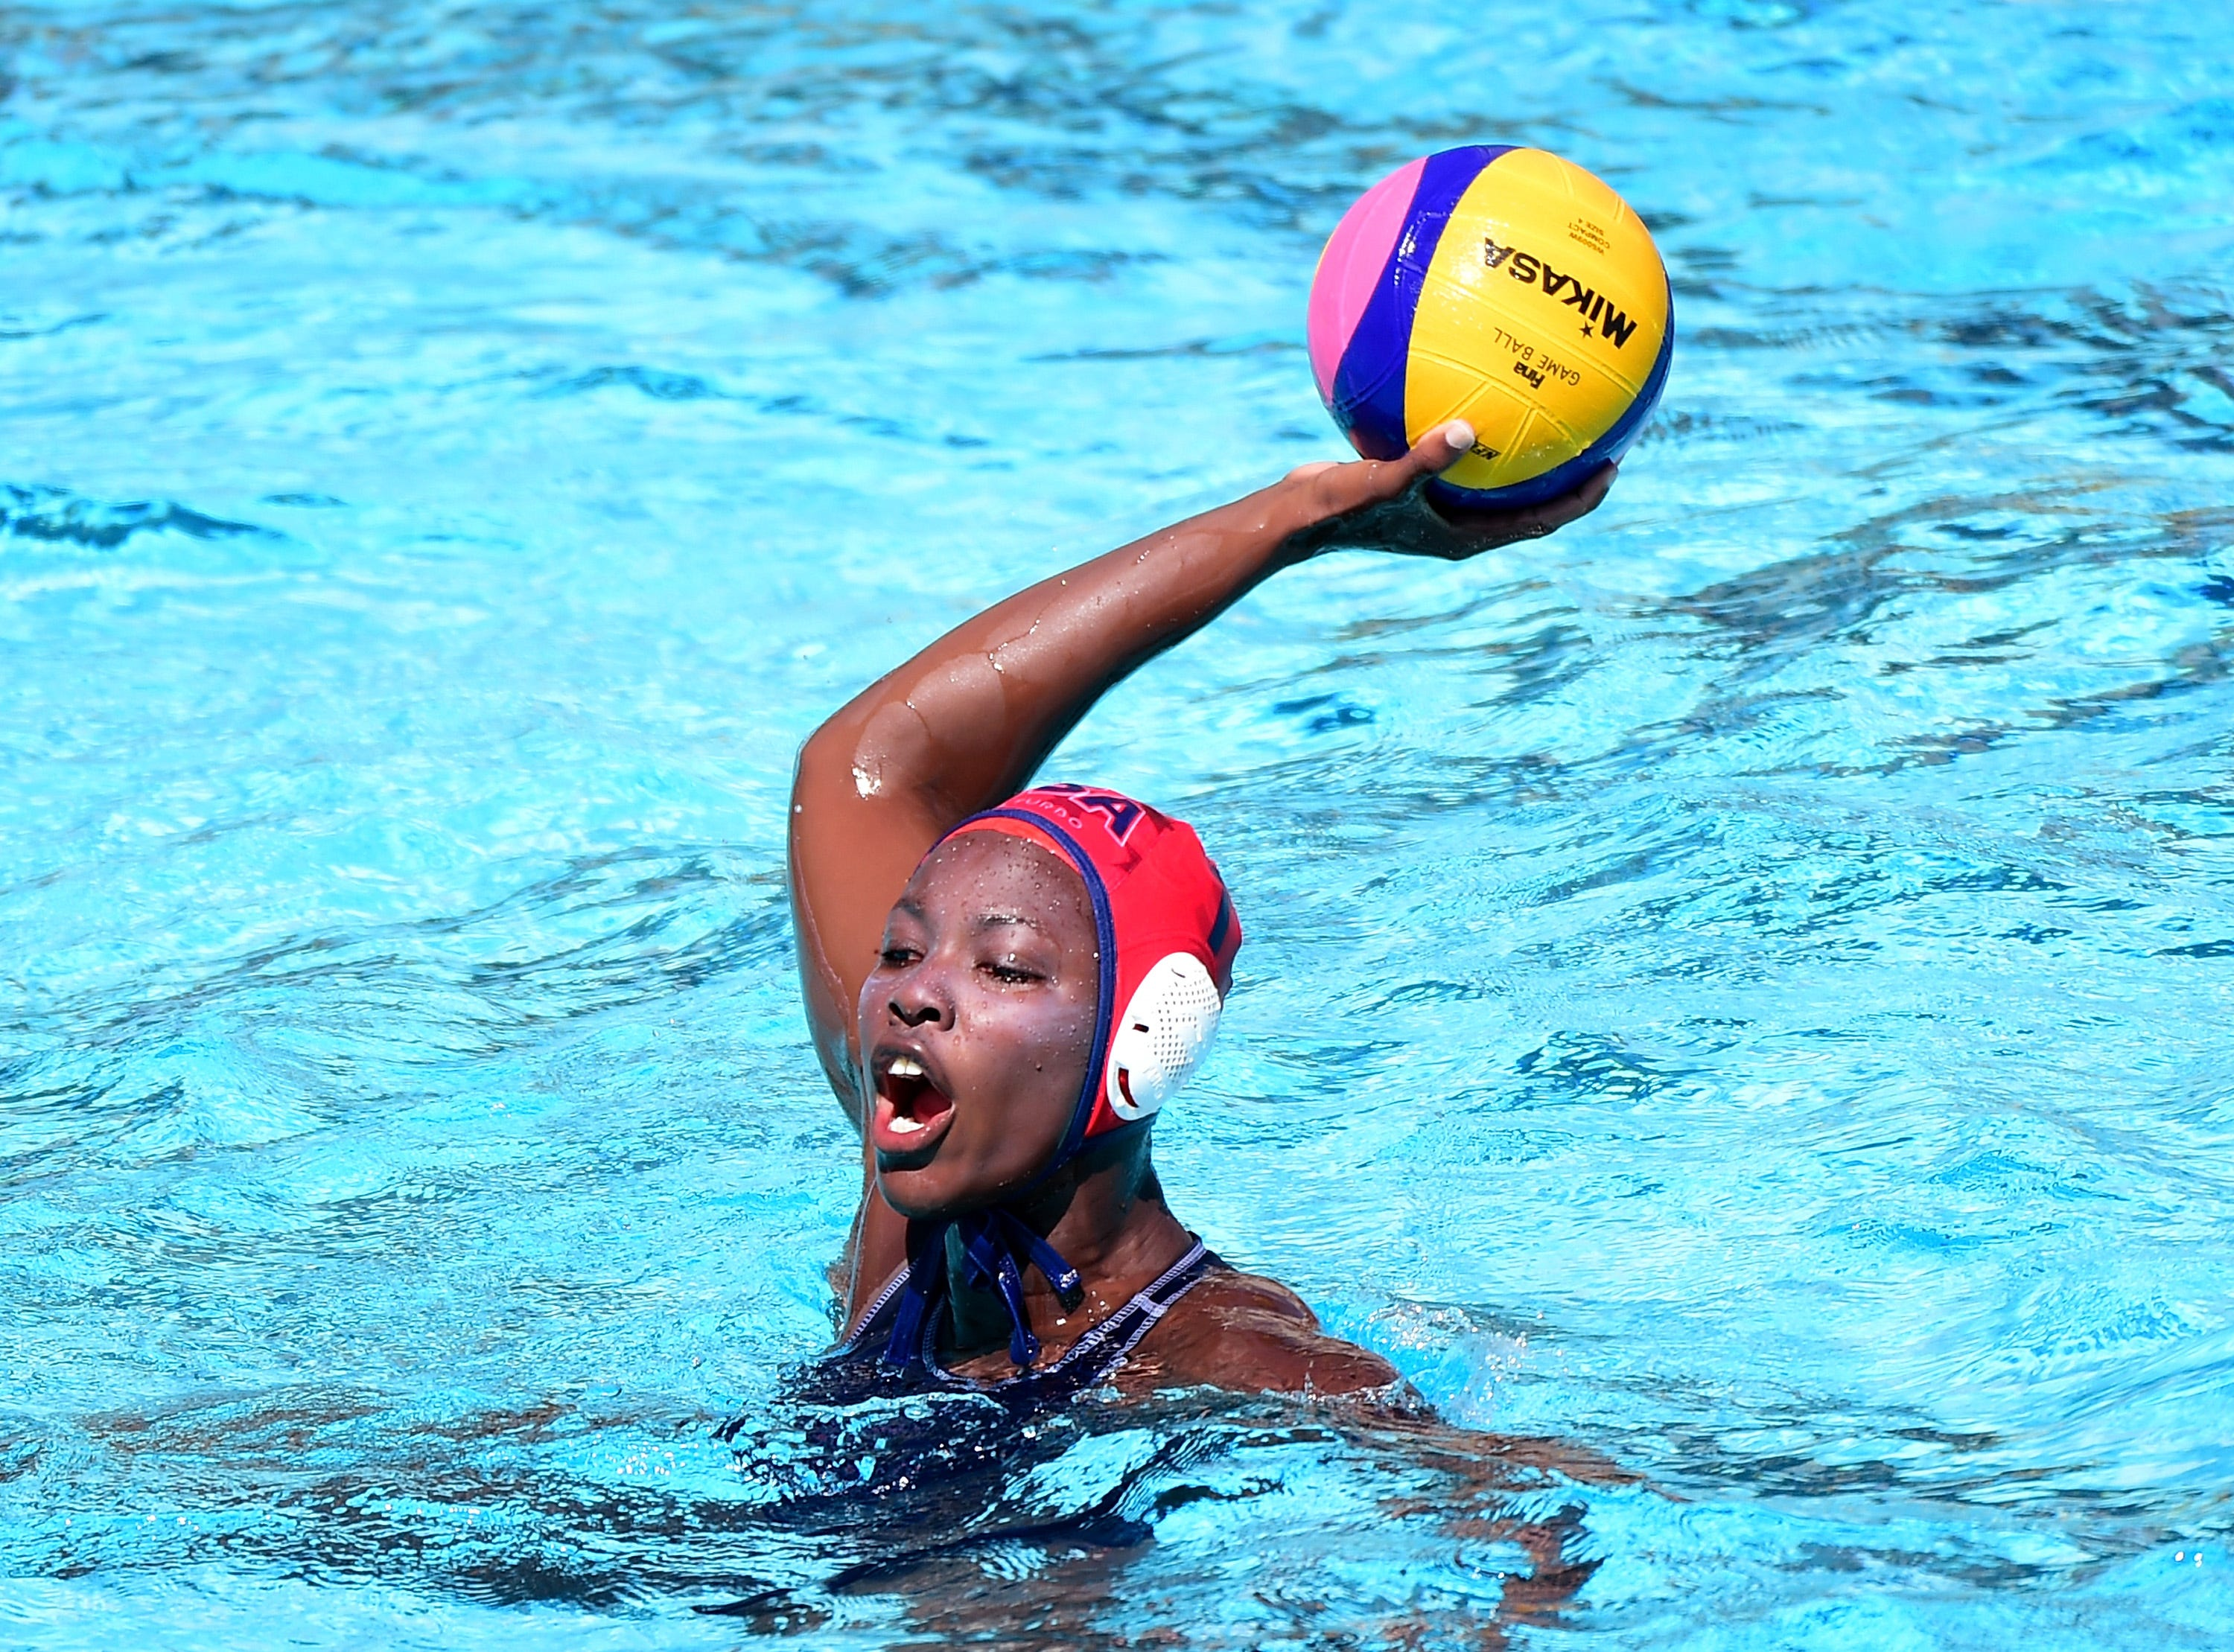 U.S. water polo star Ashleigh Johnson embraces role outside the pool